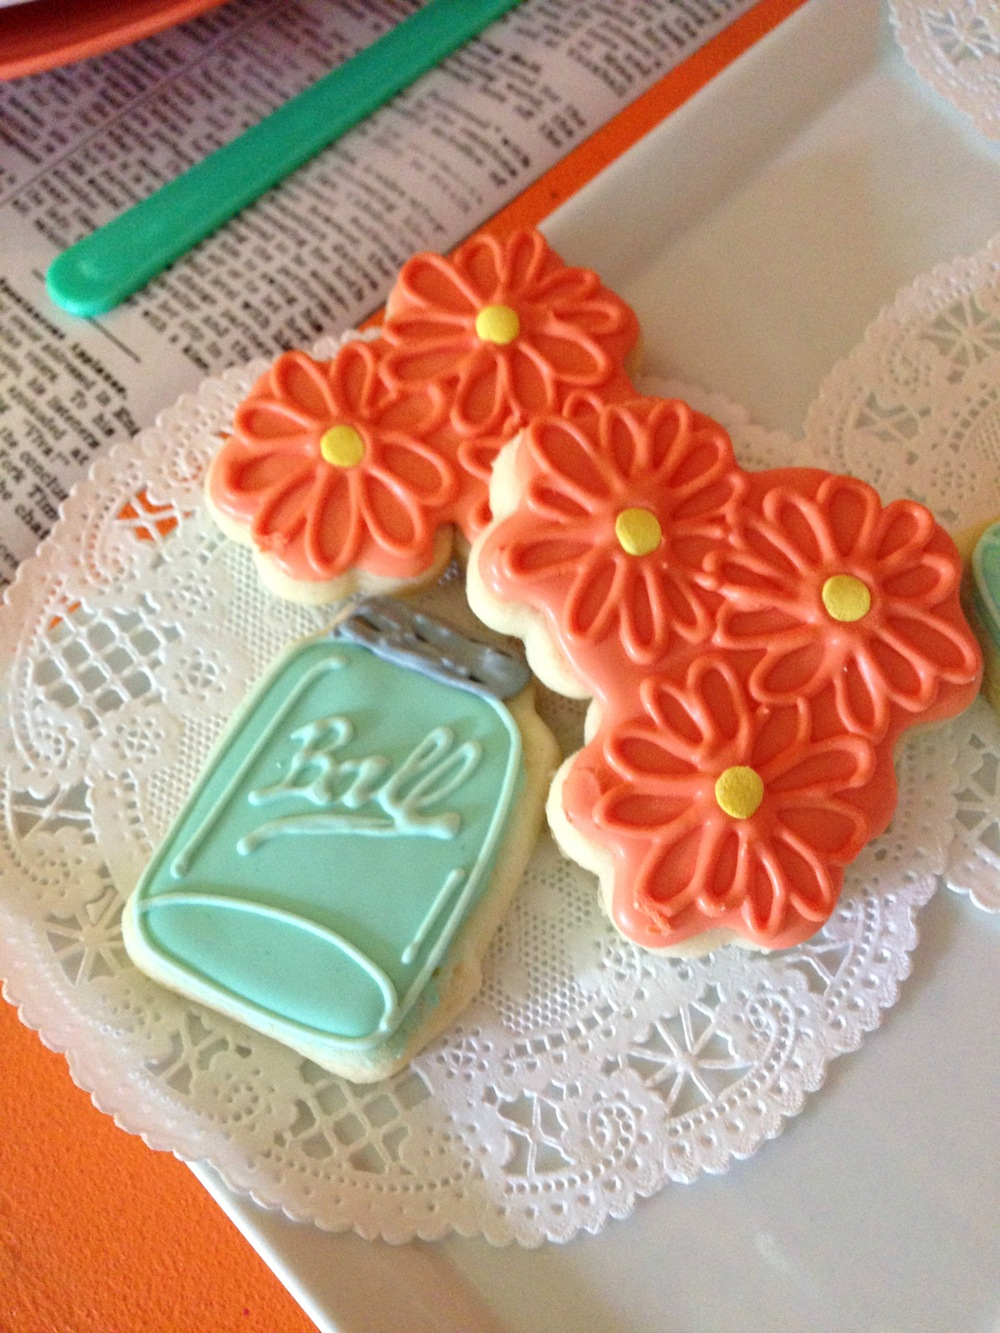 grandparents-day-styled-photo-shoot-cookies.jpg